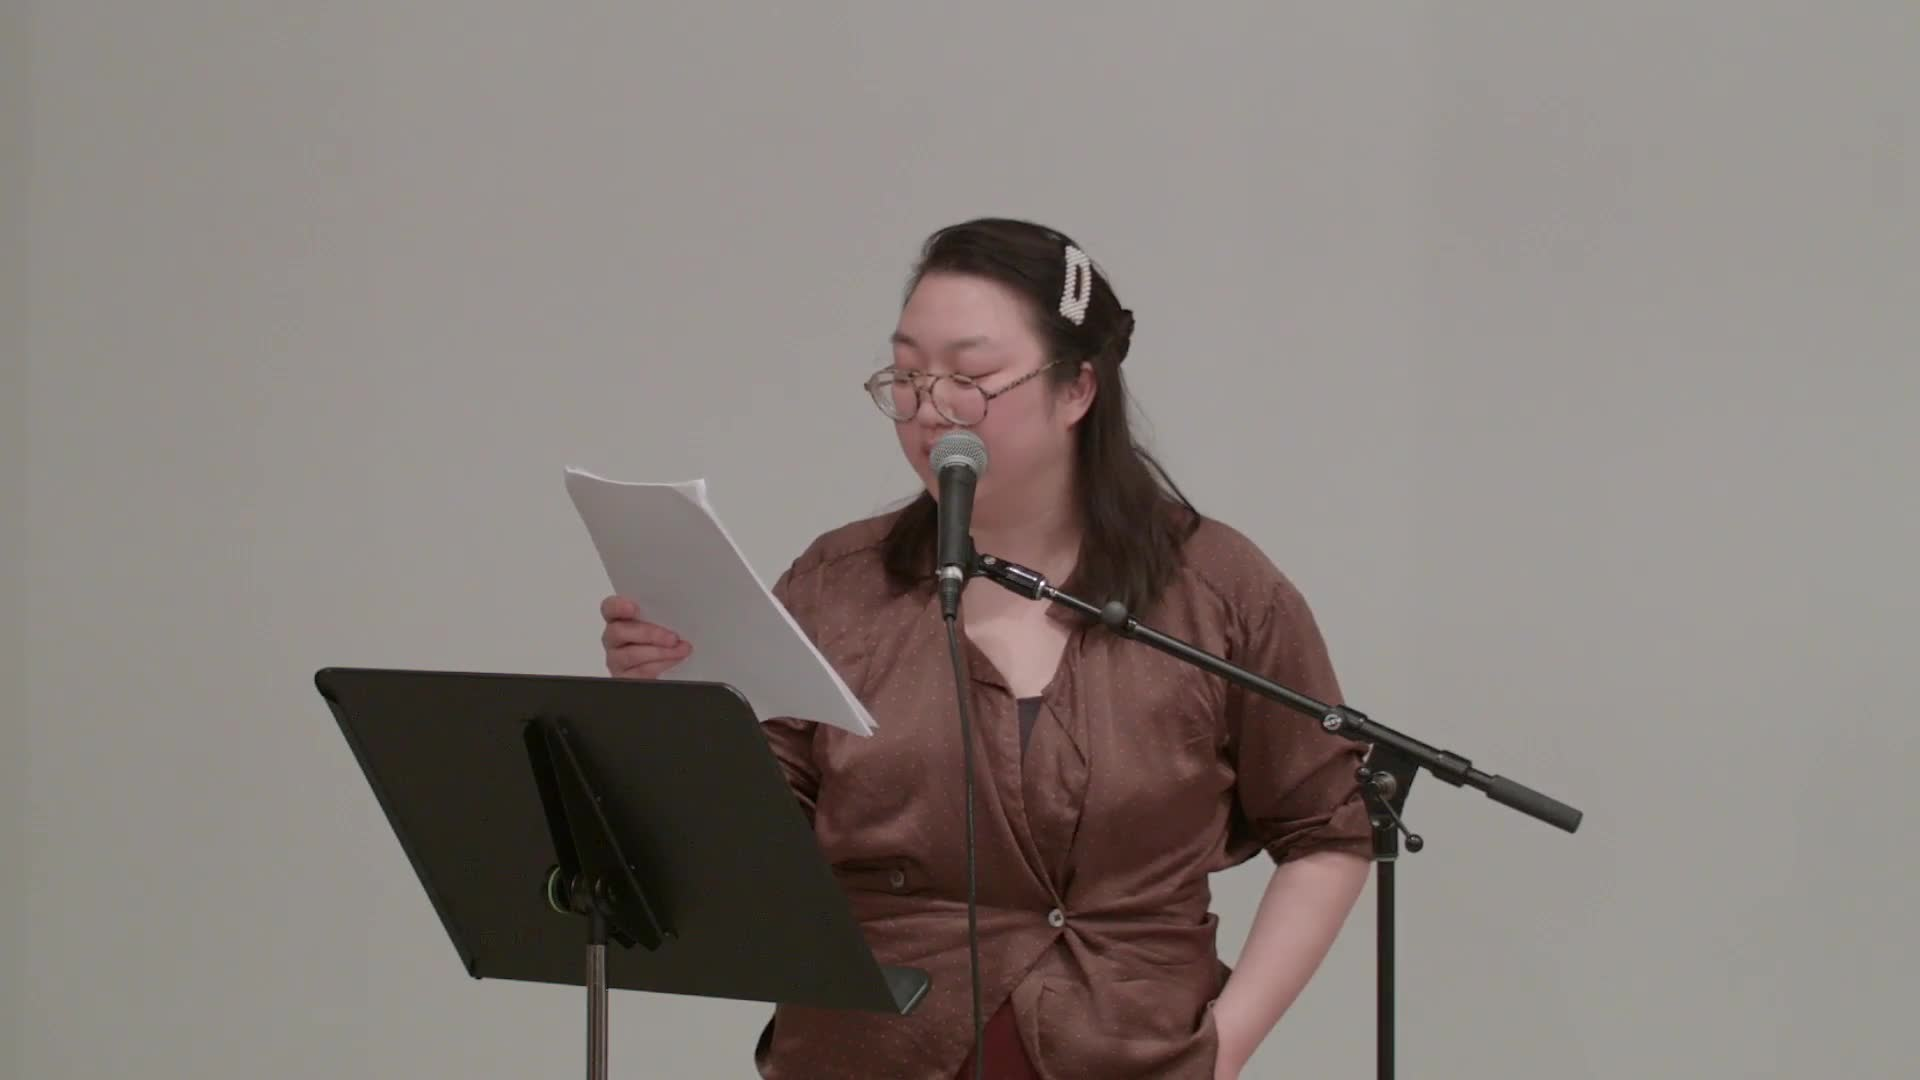 Oki Sogumi is shown standing against a white wall in a large room with metal columns, facing the camera and an audience seated in wooden folding chairs.  She reads from sheets of paper in her hand and speaks into a microphone.  The camera occasionally zooms in to show her from the waist up, then returns to filming the whole room.